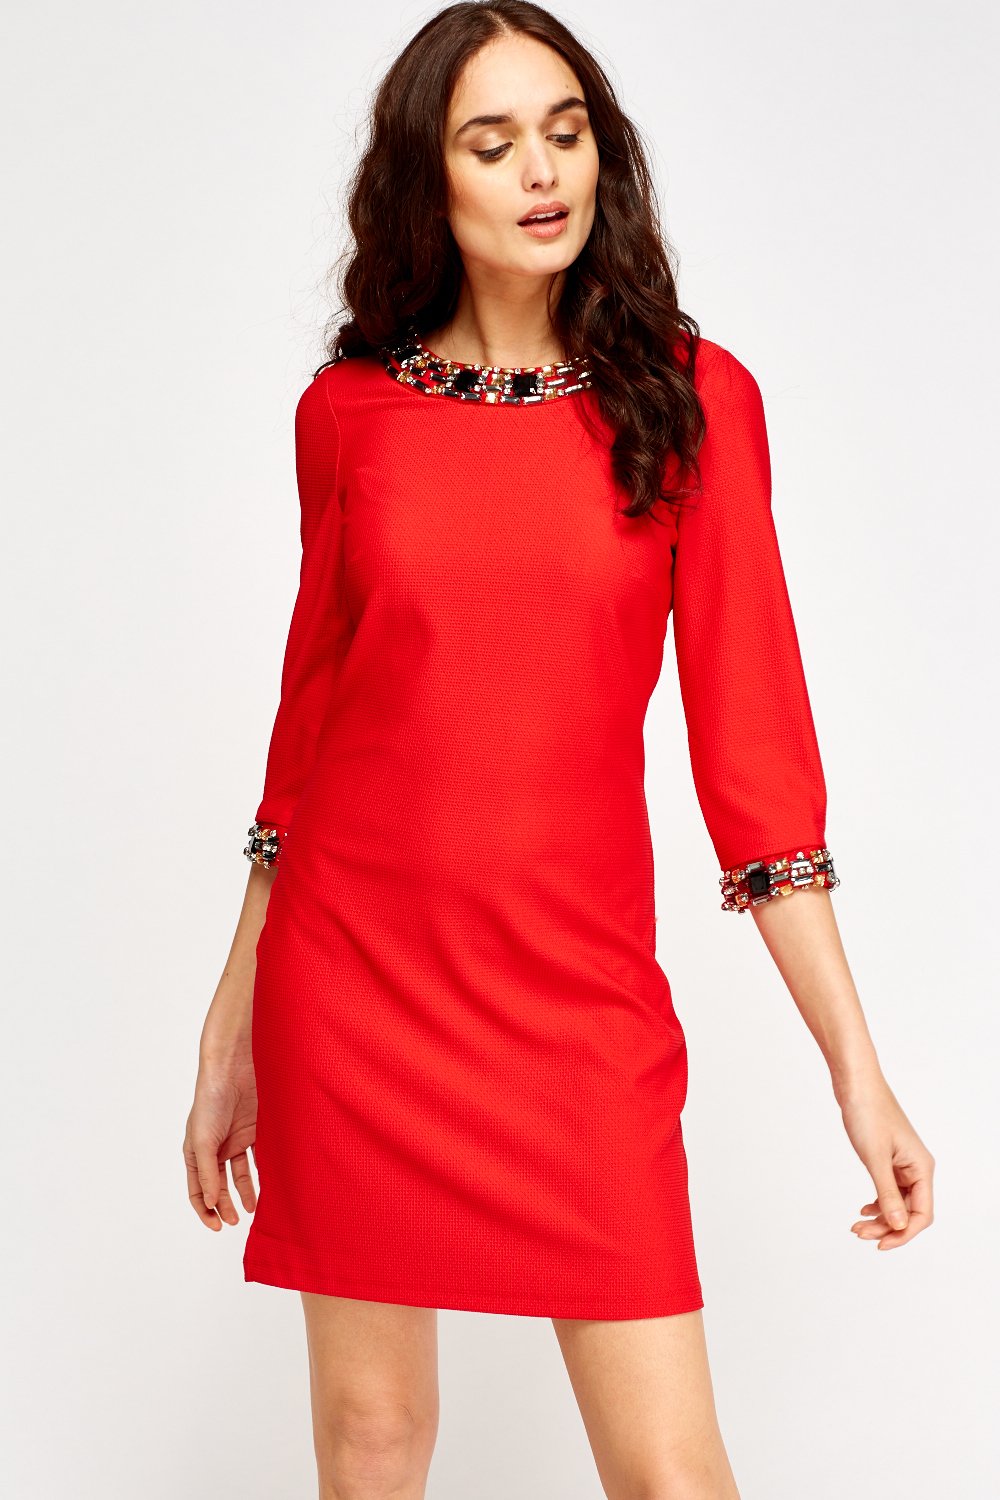 Shift Embellished dress pictures recommend to wear for winter in 2019